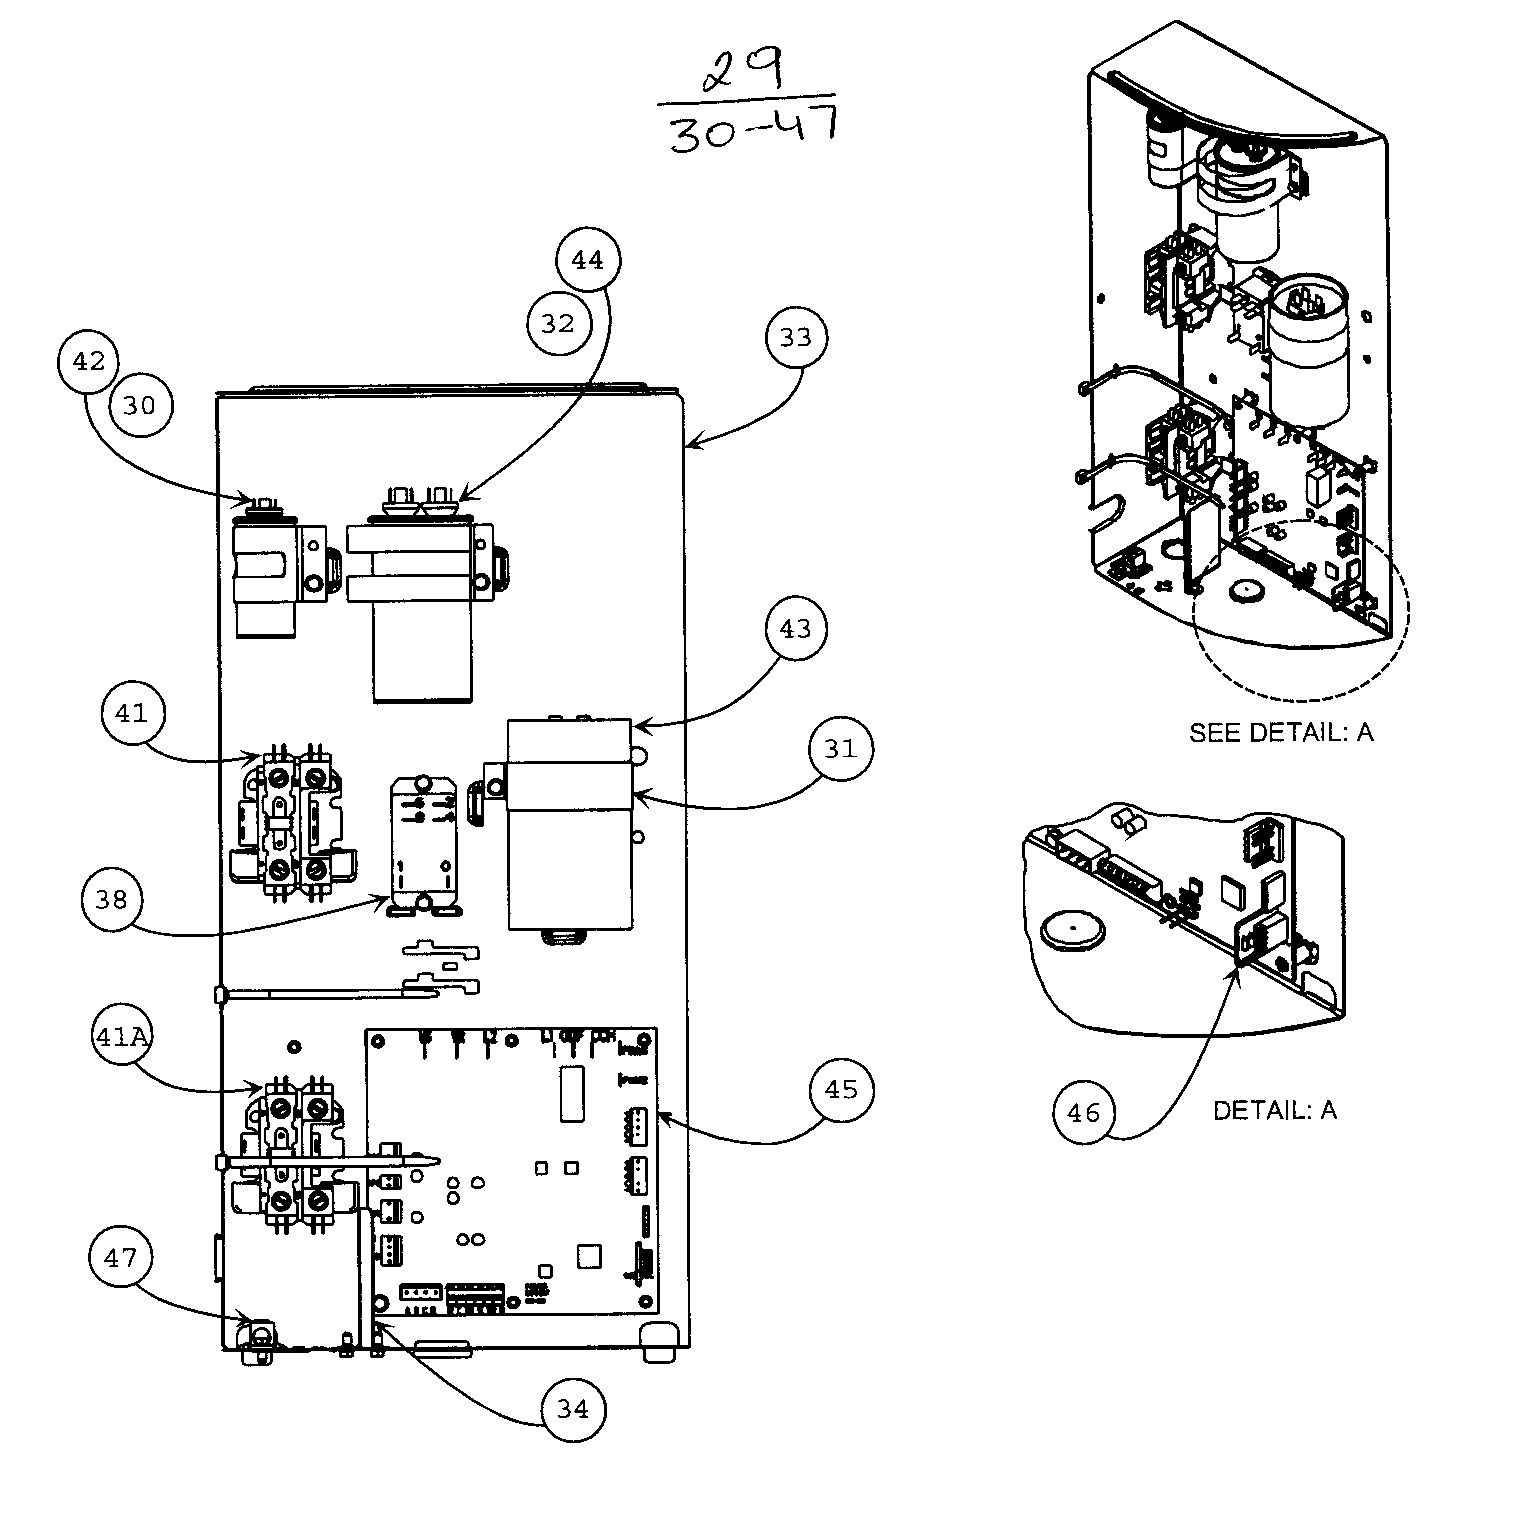 CONTROL PANEL Diagram & Parts List for Model